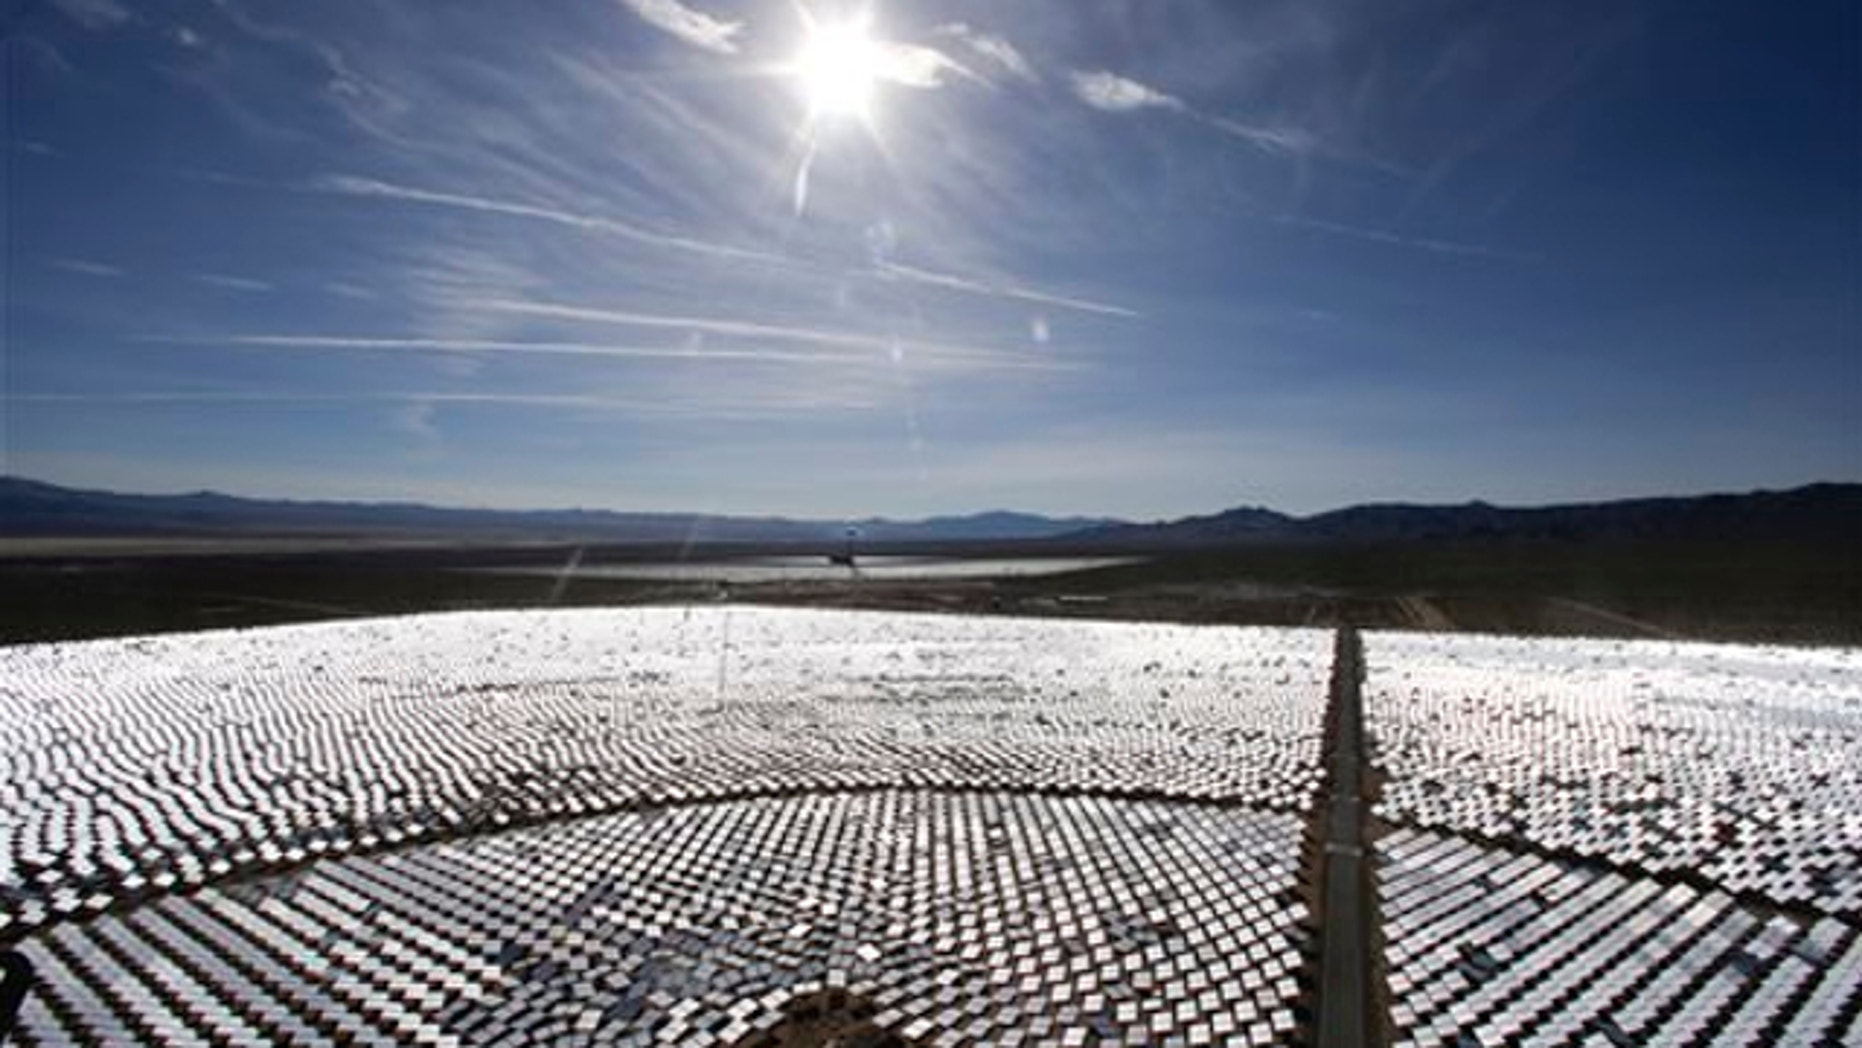 Feb. 11, 2014: Some of the 300,000 computer-controlled mirrors, each about 7 feet high and 10 feet wide, reflect sunlight to boilers that sit on 459-foot towers. The sun's power is used to heat water in the boilers' tubes and make steam, which in turn drives turbines to create electricity in Primm, Nev.